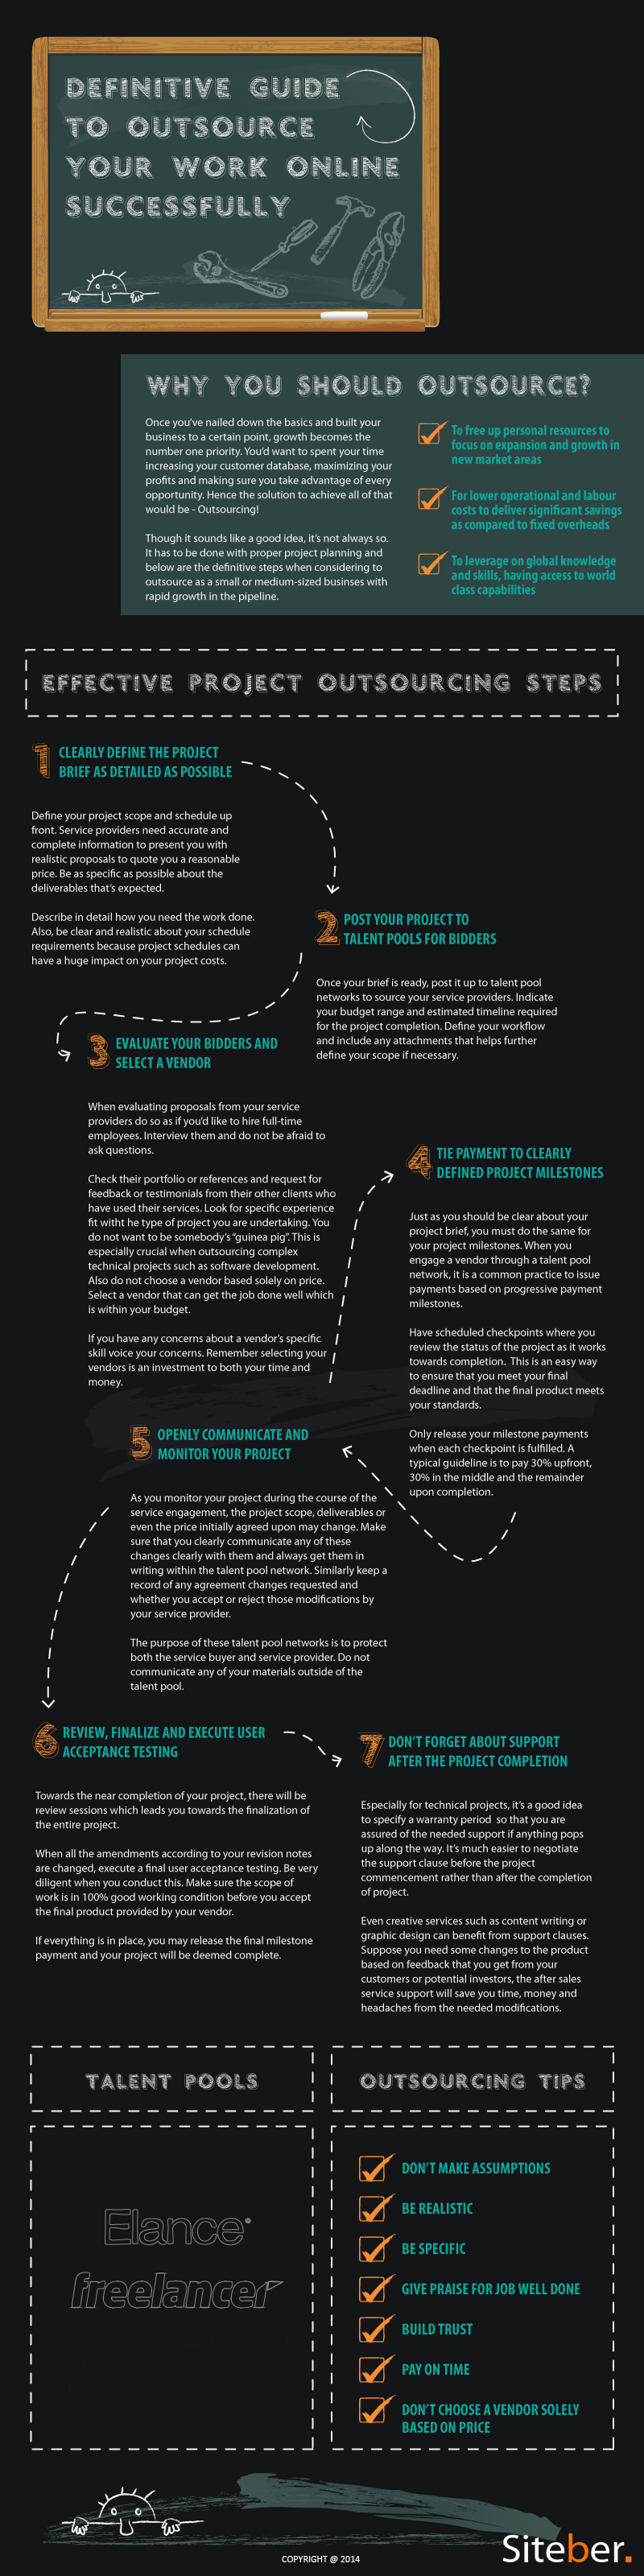 7 Steps to Successful Outsourcing